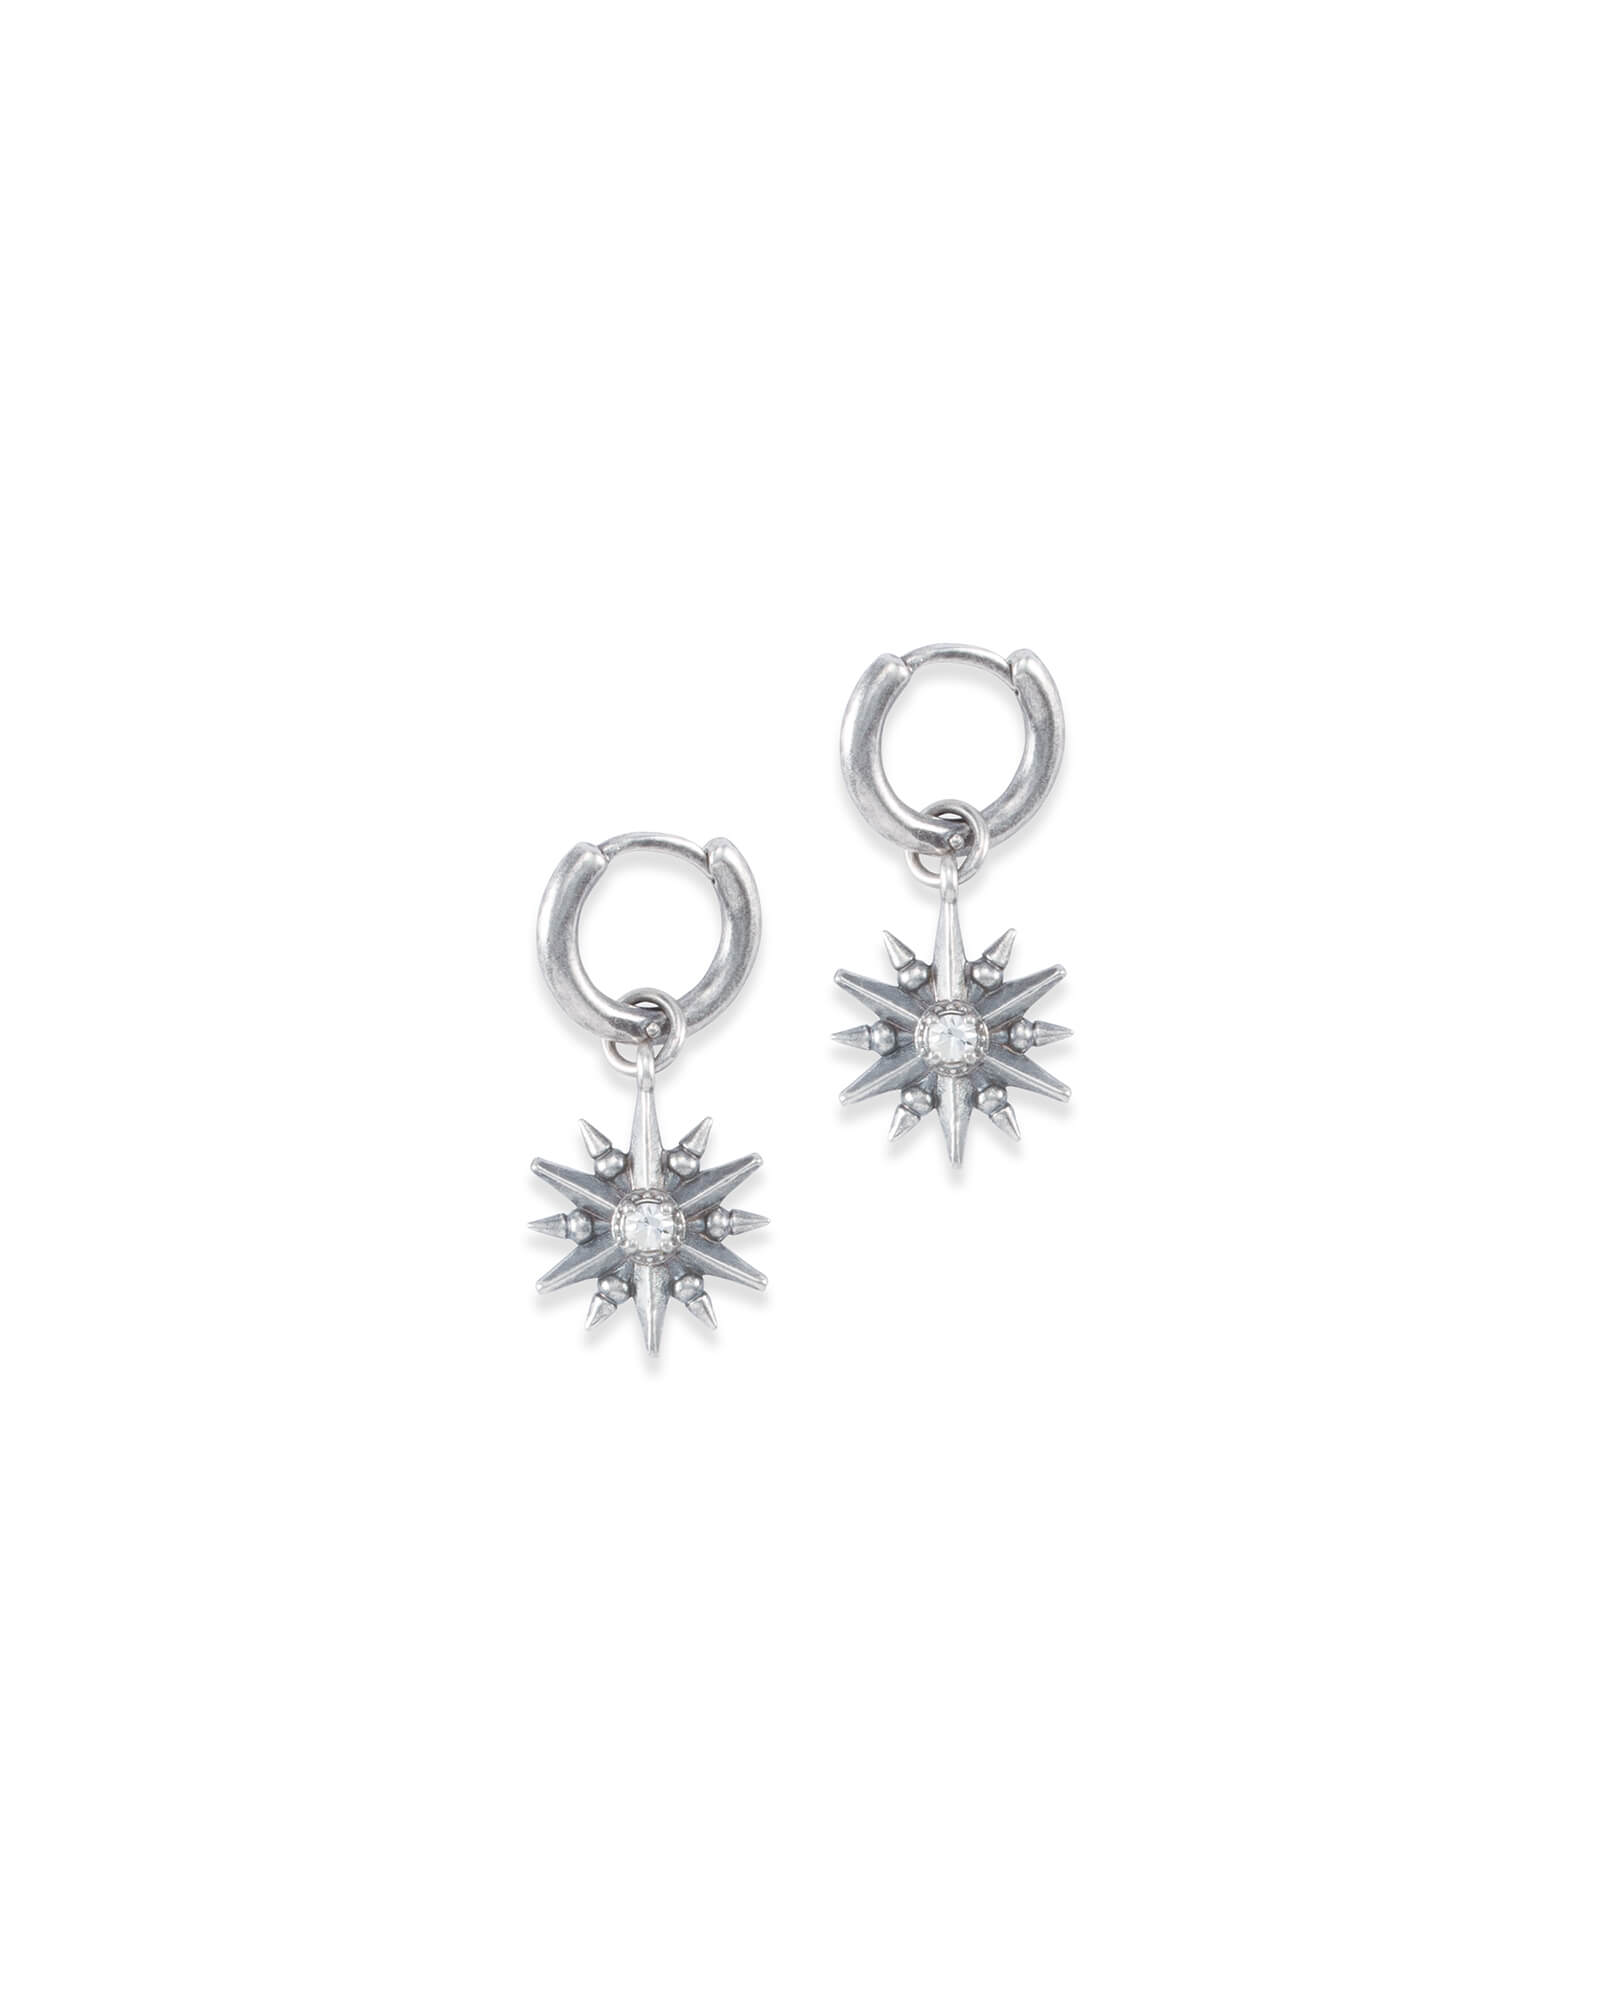 Starburst Charm Earrings Set in Vintage Silver